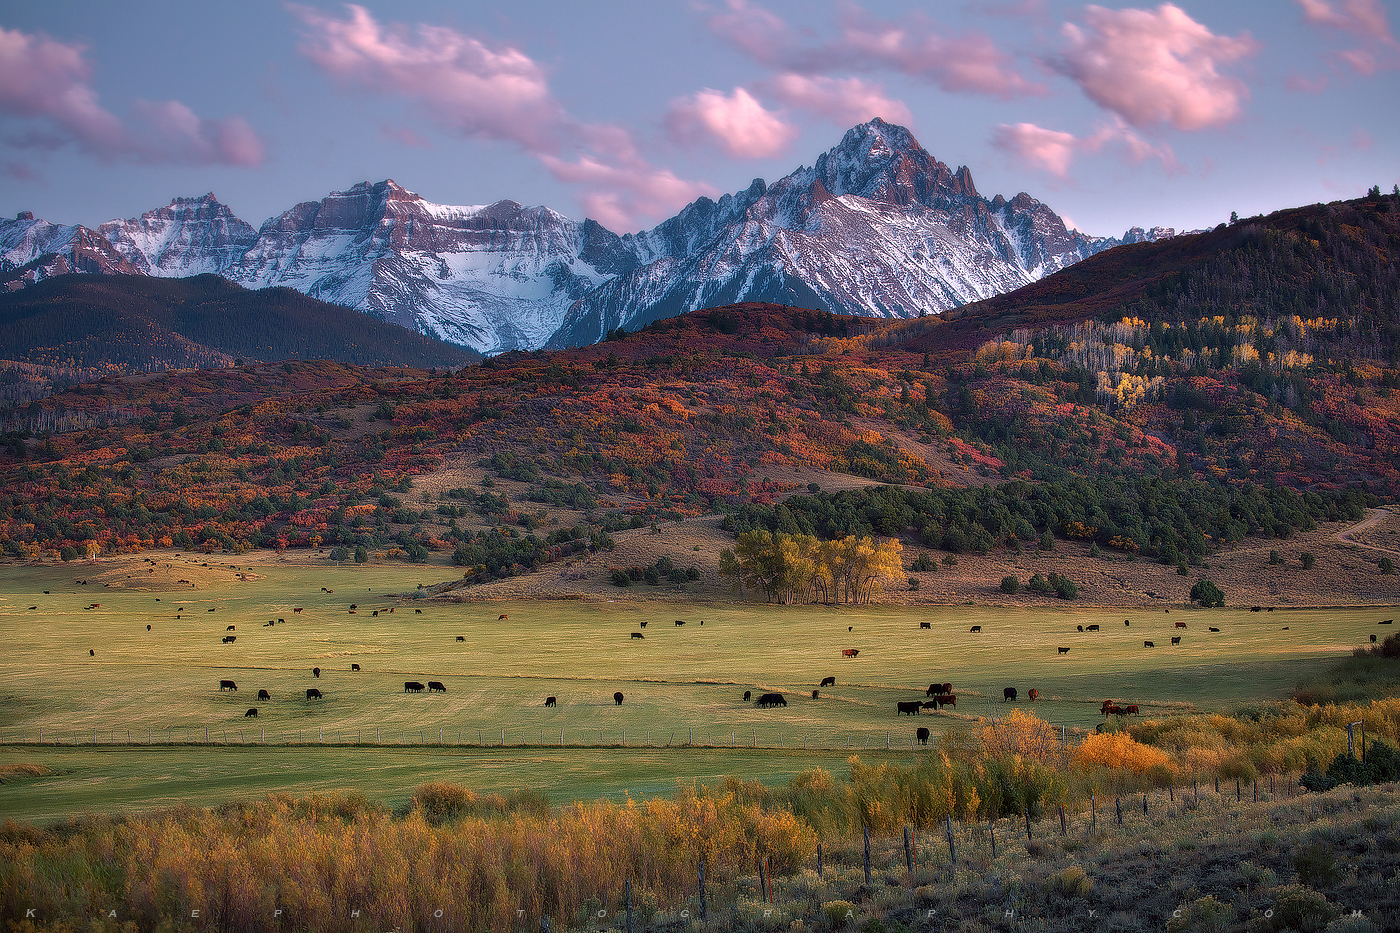 A classic Colorado Ranch scene, with hay bales, fall colors and pink clouds.  Mount Sneffels & the Dallas Divide towers above...